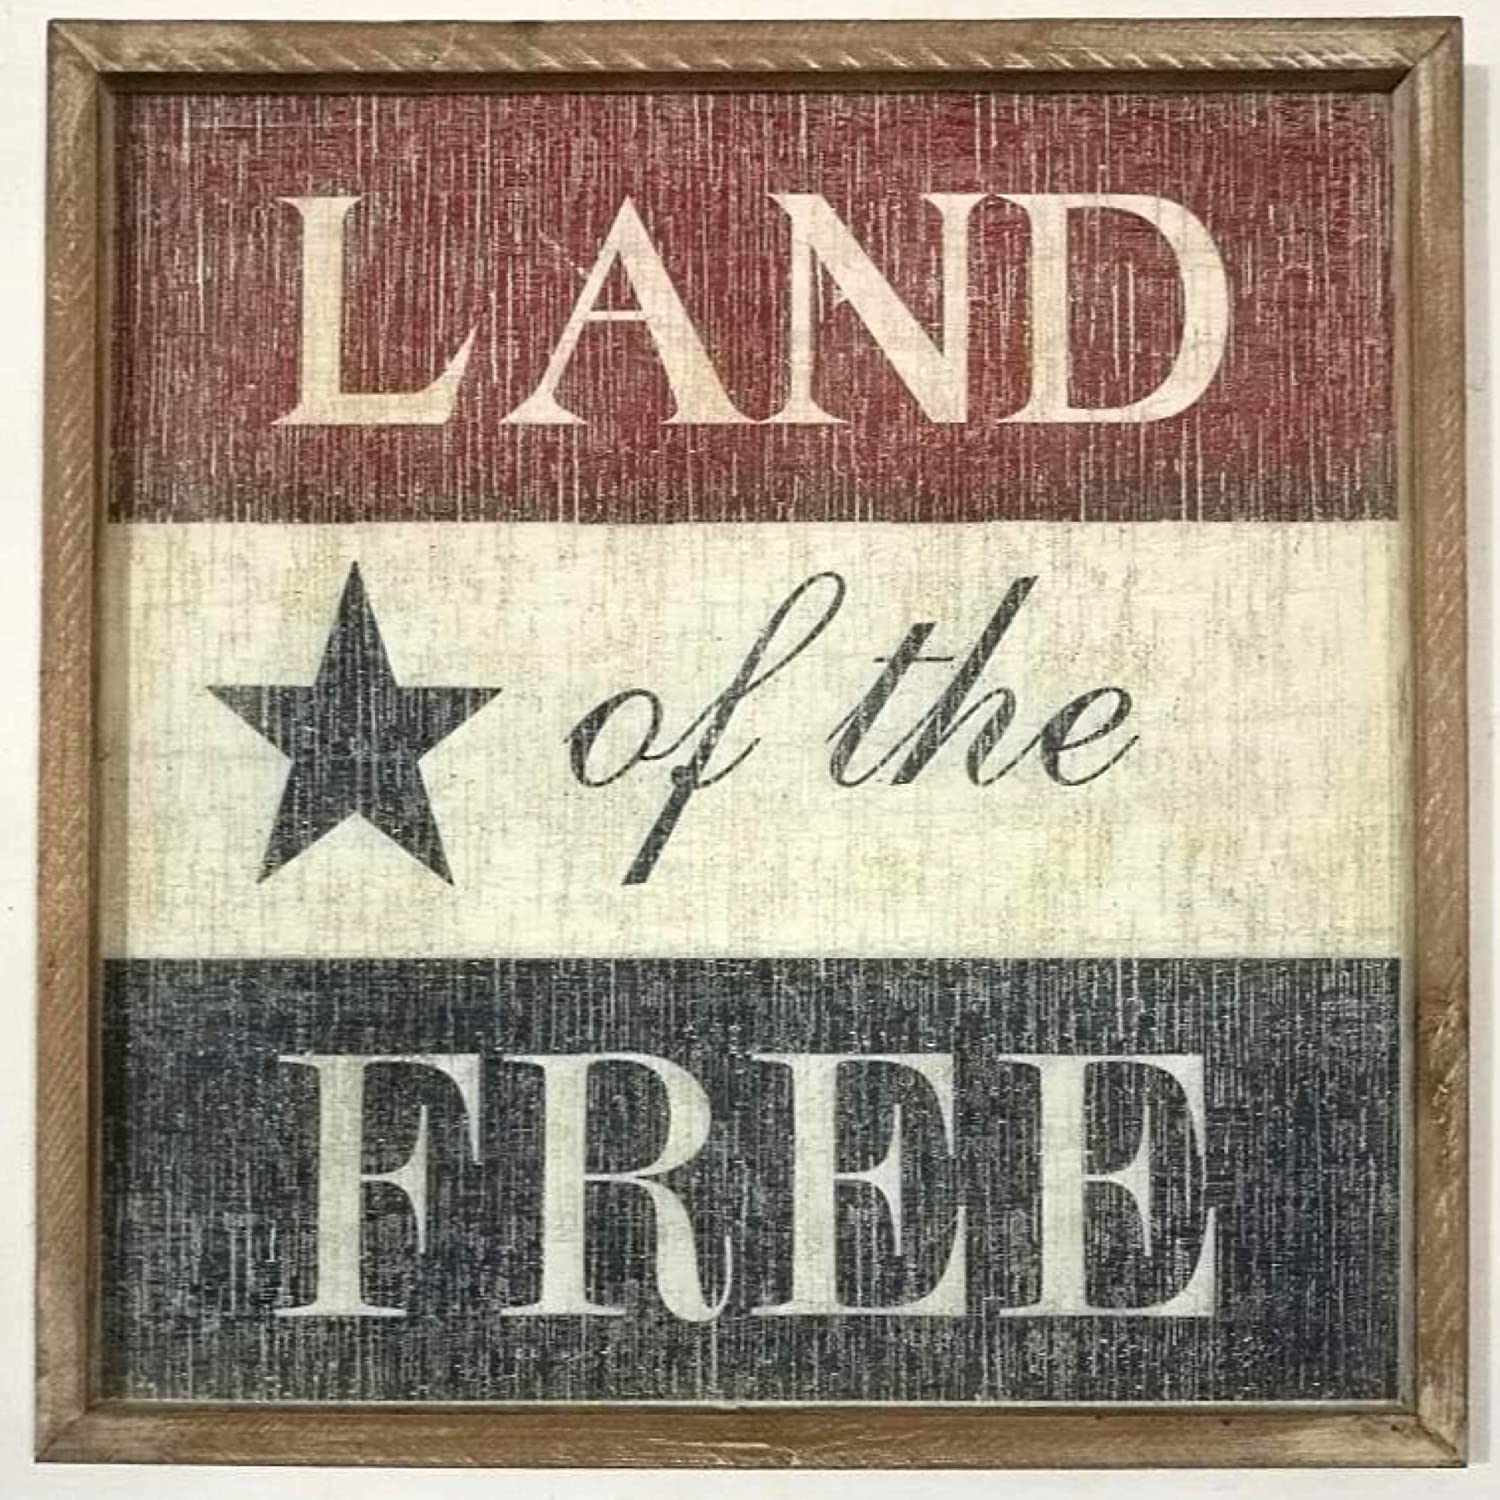 THE NIFTY NOOK Vintage Old Glory American Wall Sign Home Office Farmhouse Decor (Land Of The Free)